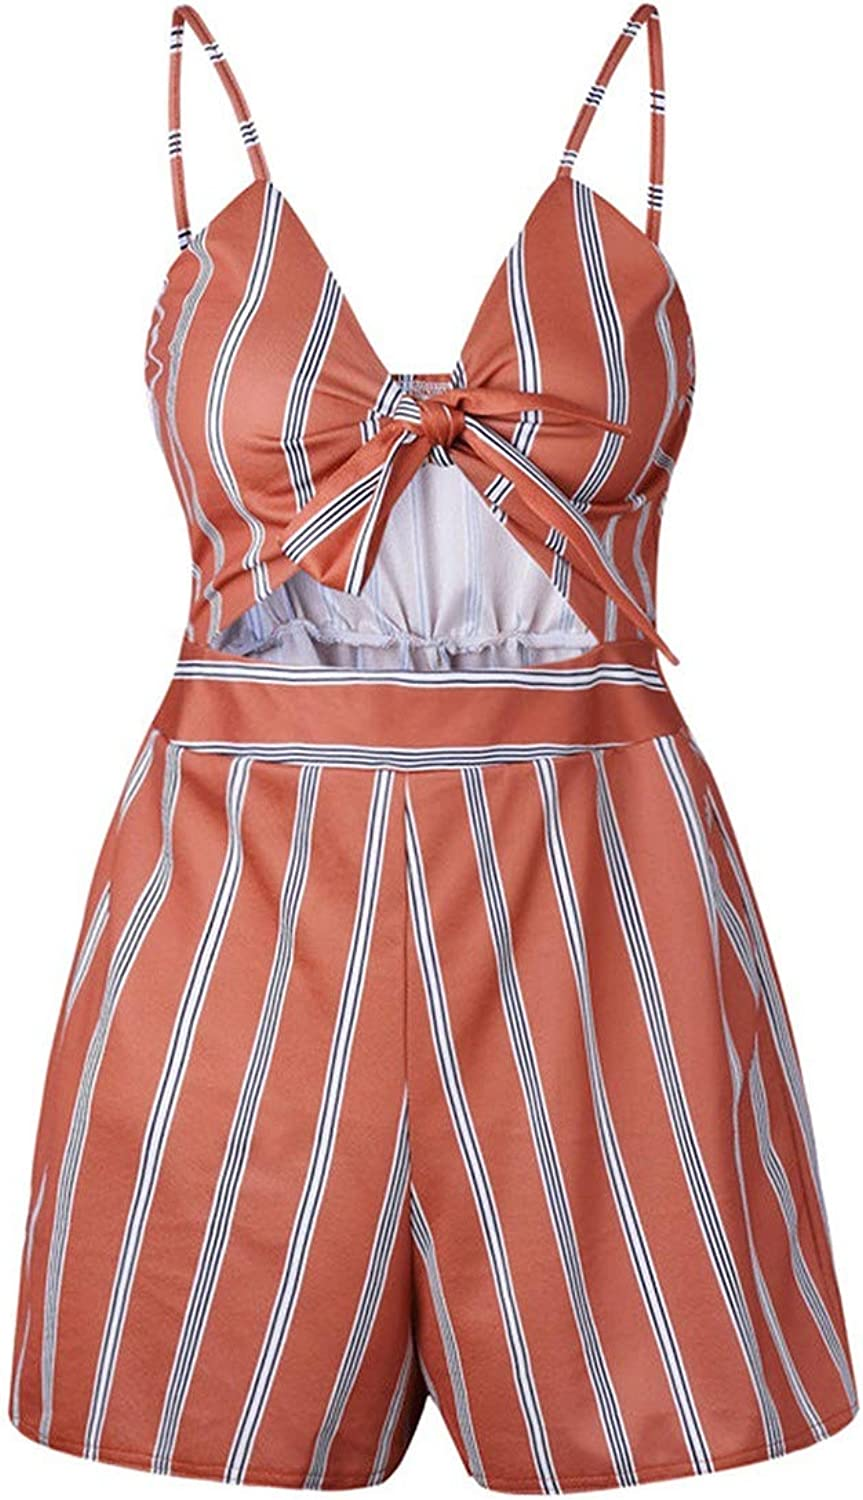 Women Summer Bow Knot Off Shoulder Playsuit Beach Party Sweet Overalls,Red,XL